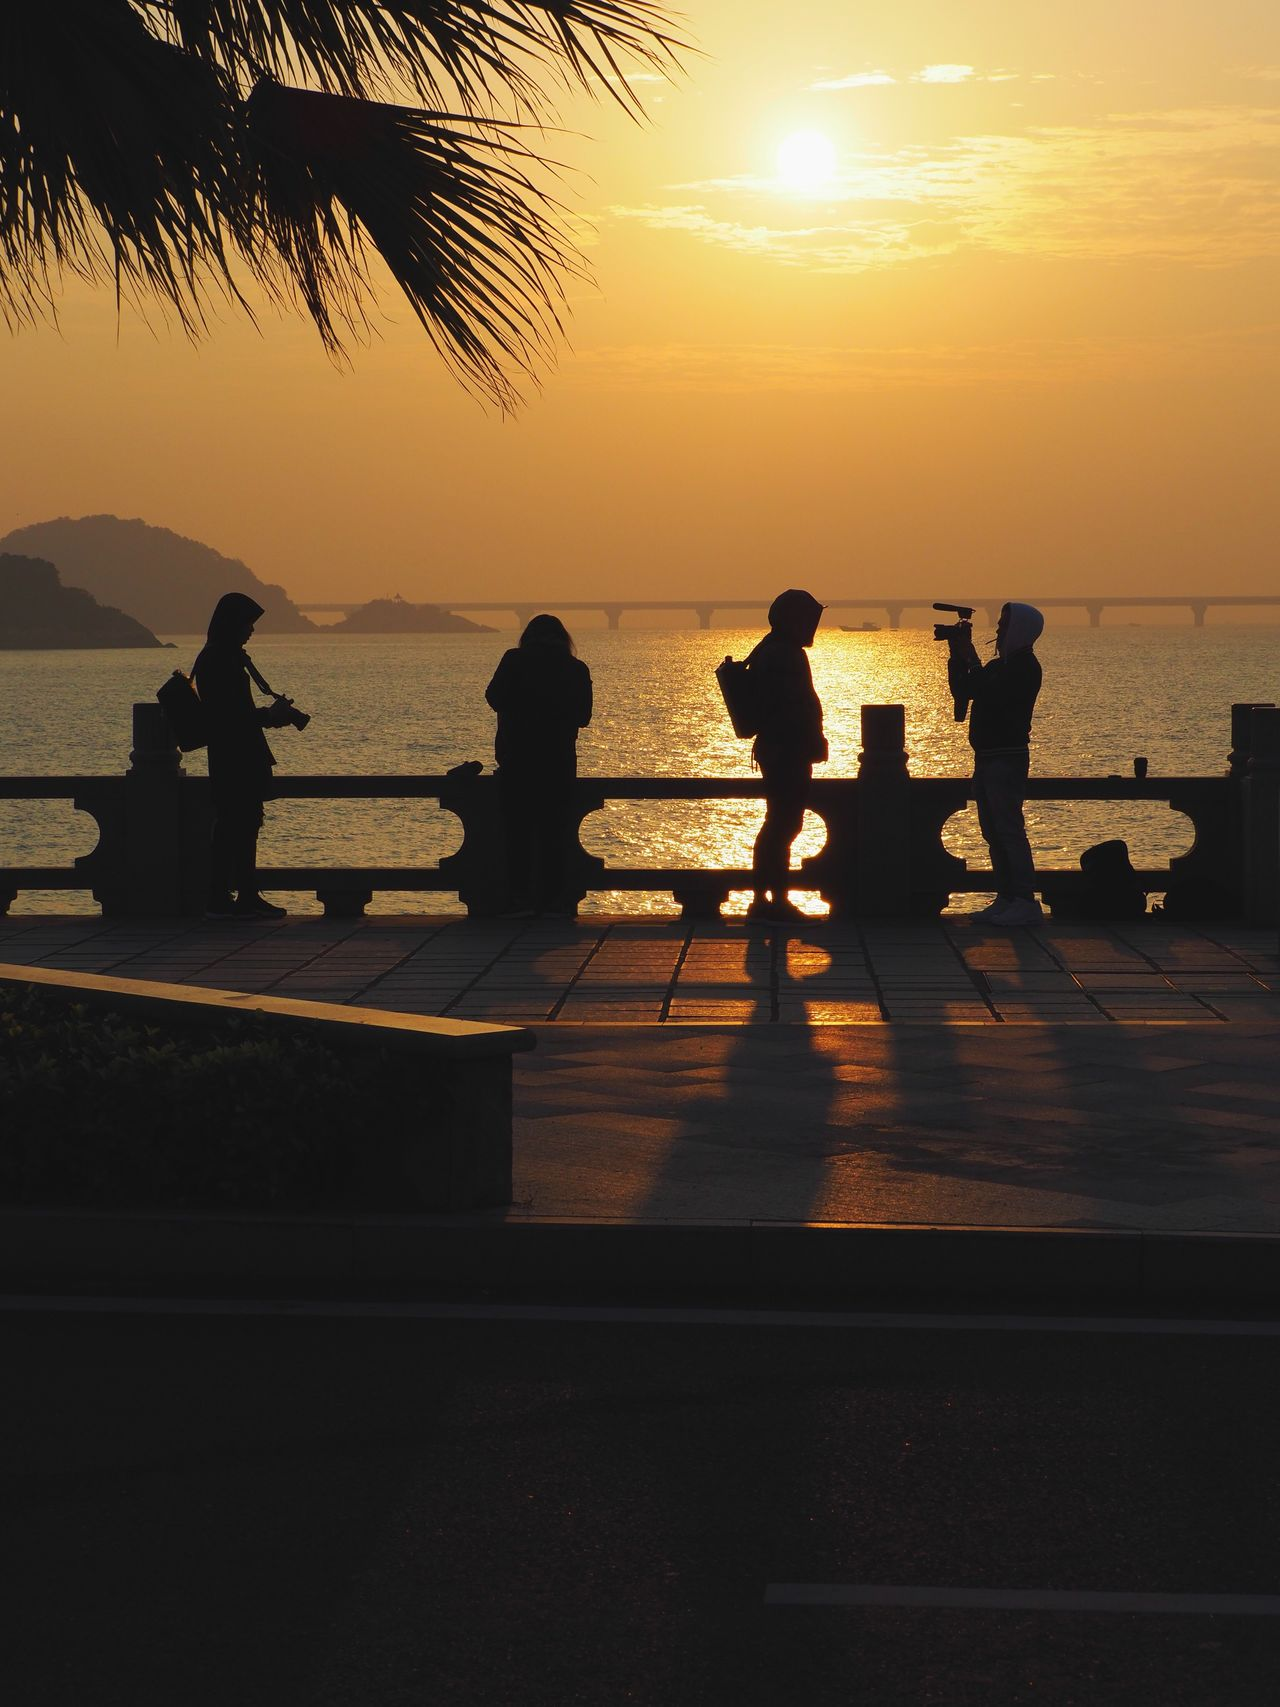 Early Birds Sunrise Zhuhai Sunlight Beauty In Nature Streetphotography Silhouette Lifestyles Real People Reflection Leisure Activity Men Water Sea Shadow Tree Women Sky Vacations Beauty In Nature Outdoors Nature Togetherness People Day